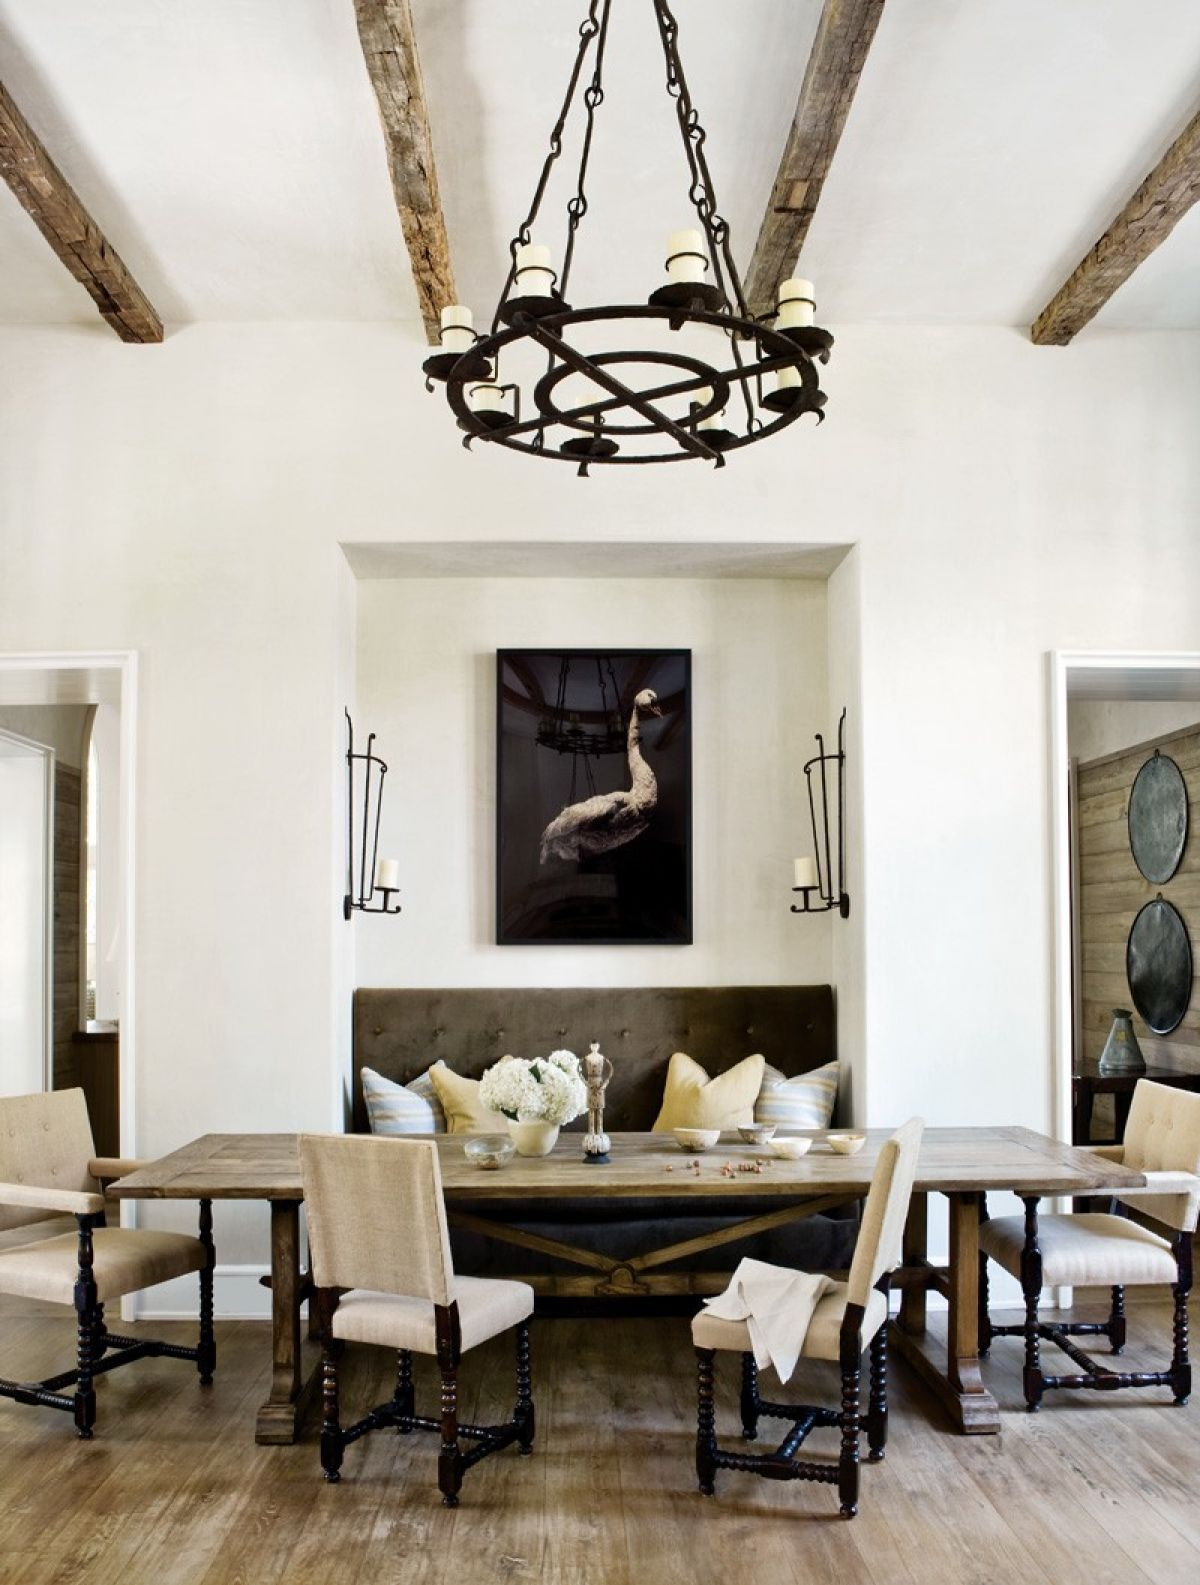 Popular dining room area in Spanish homes